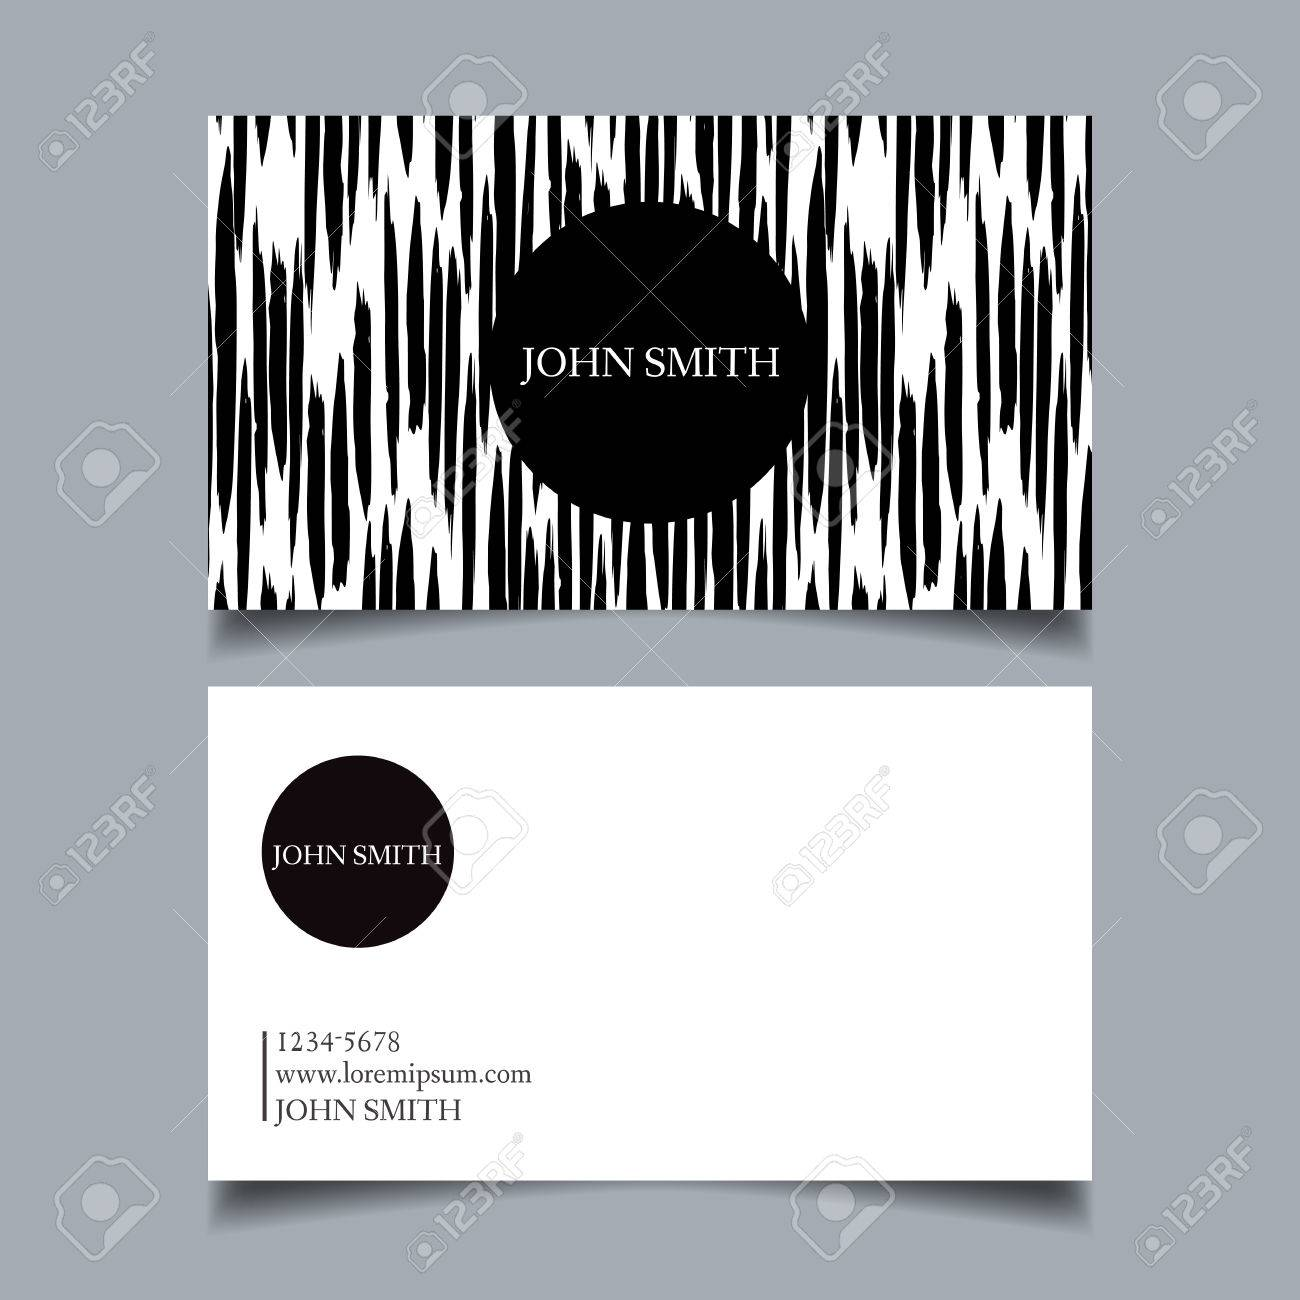 Template Business Card, Editable, Neat, Black-and-white Background ...